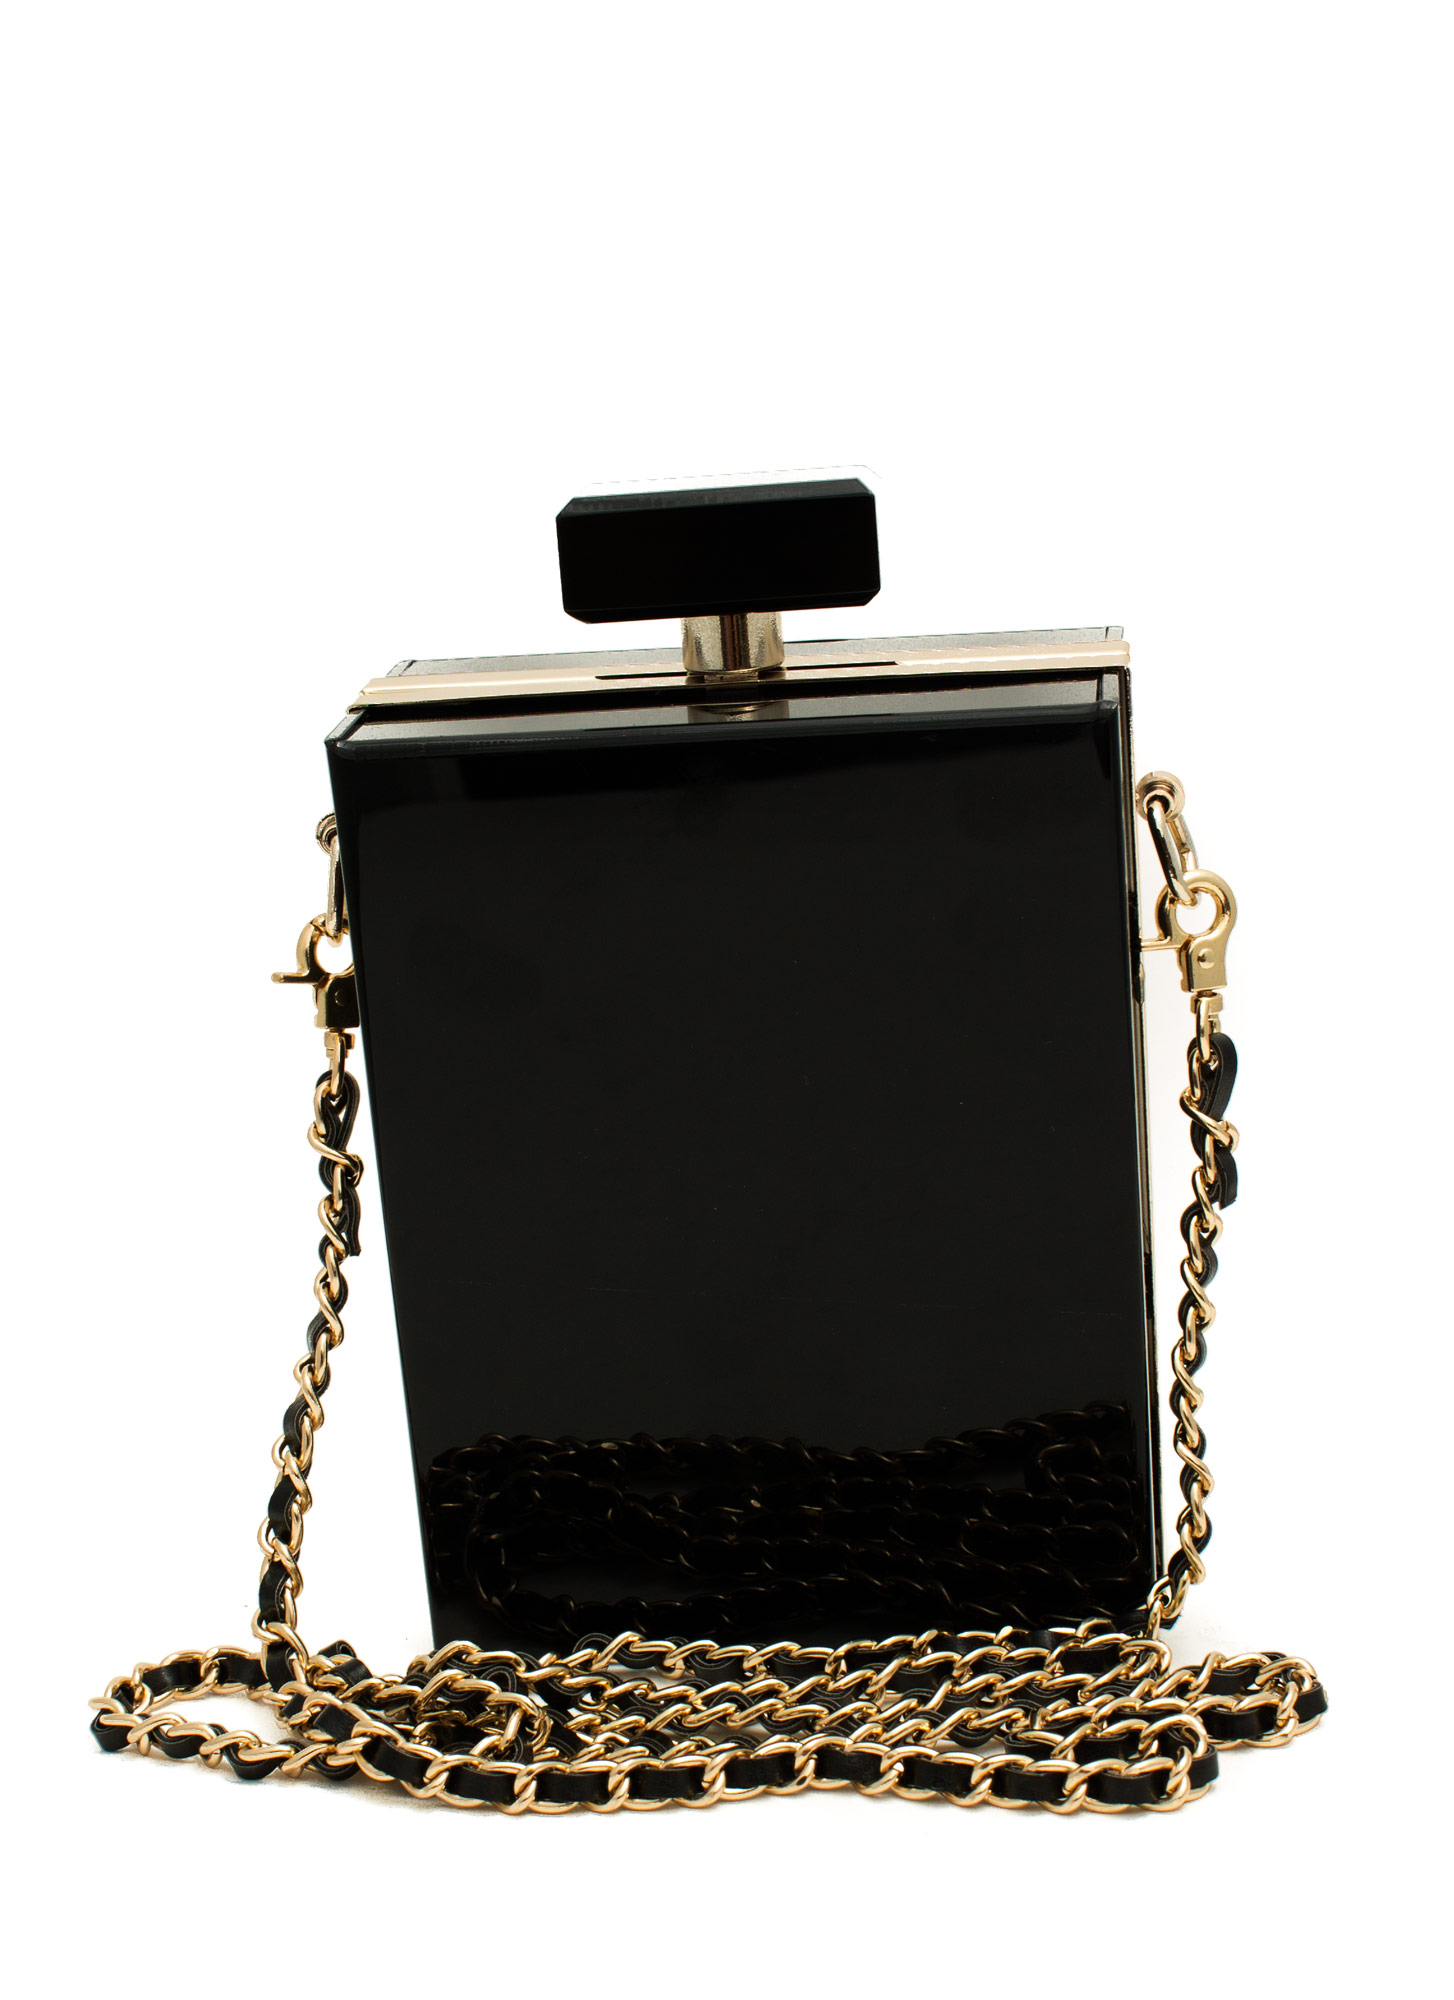 Perfume Bottle Clutch BLACKGOLD